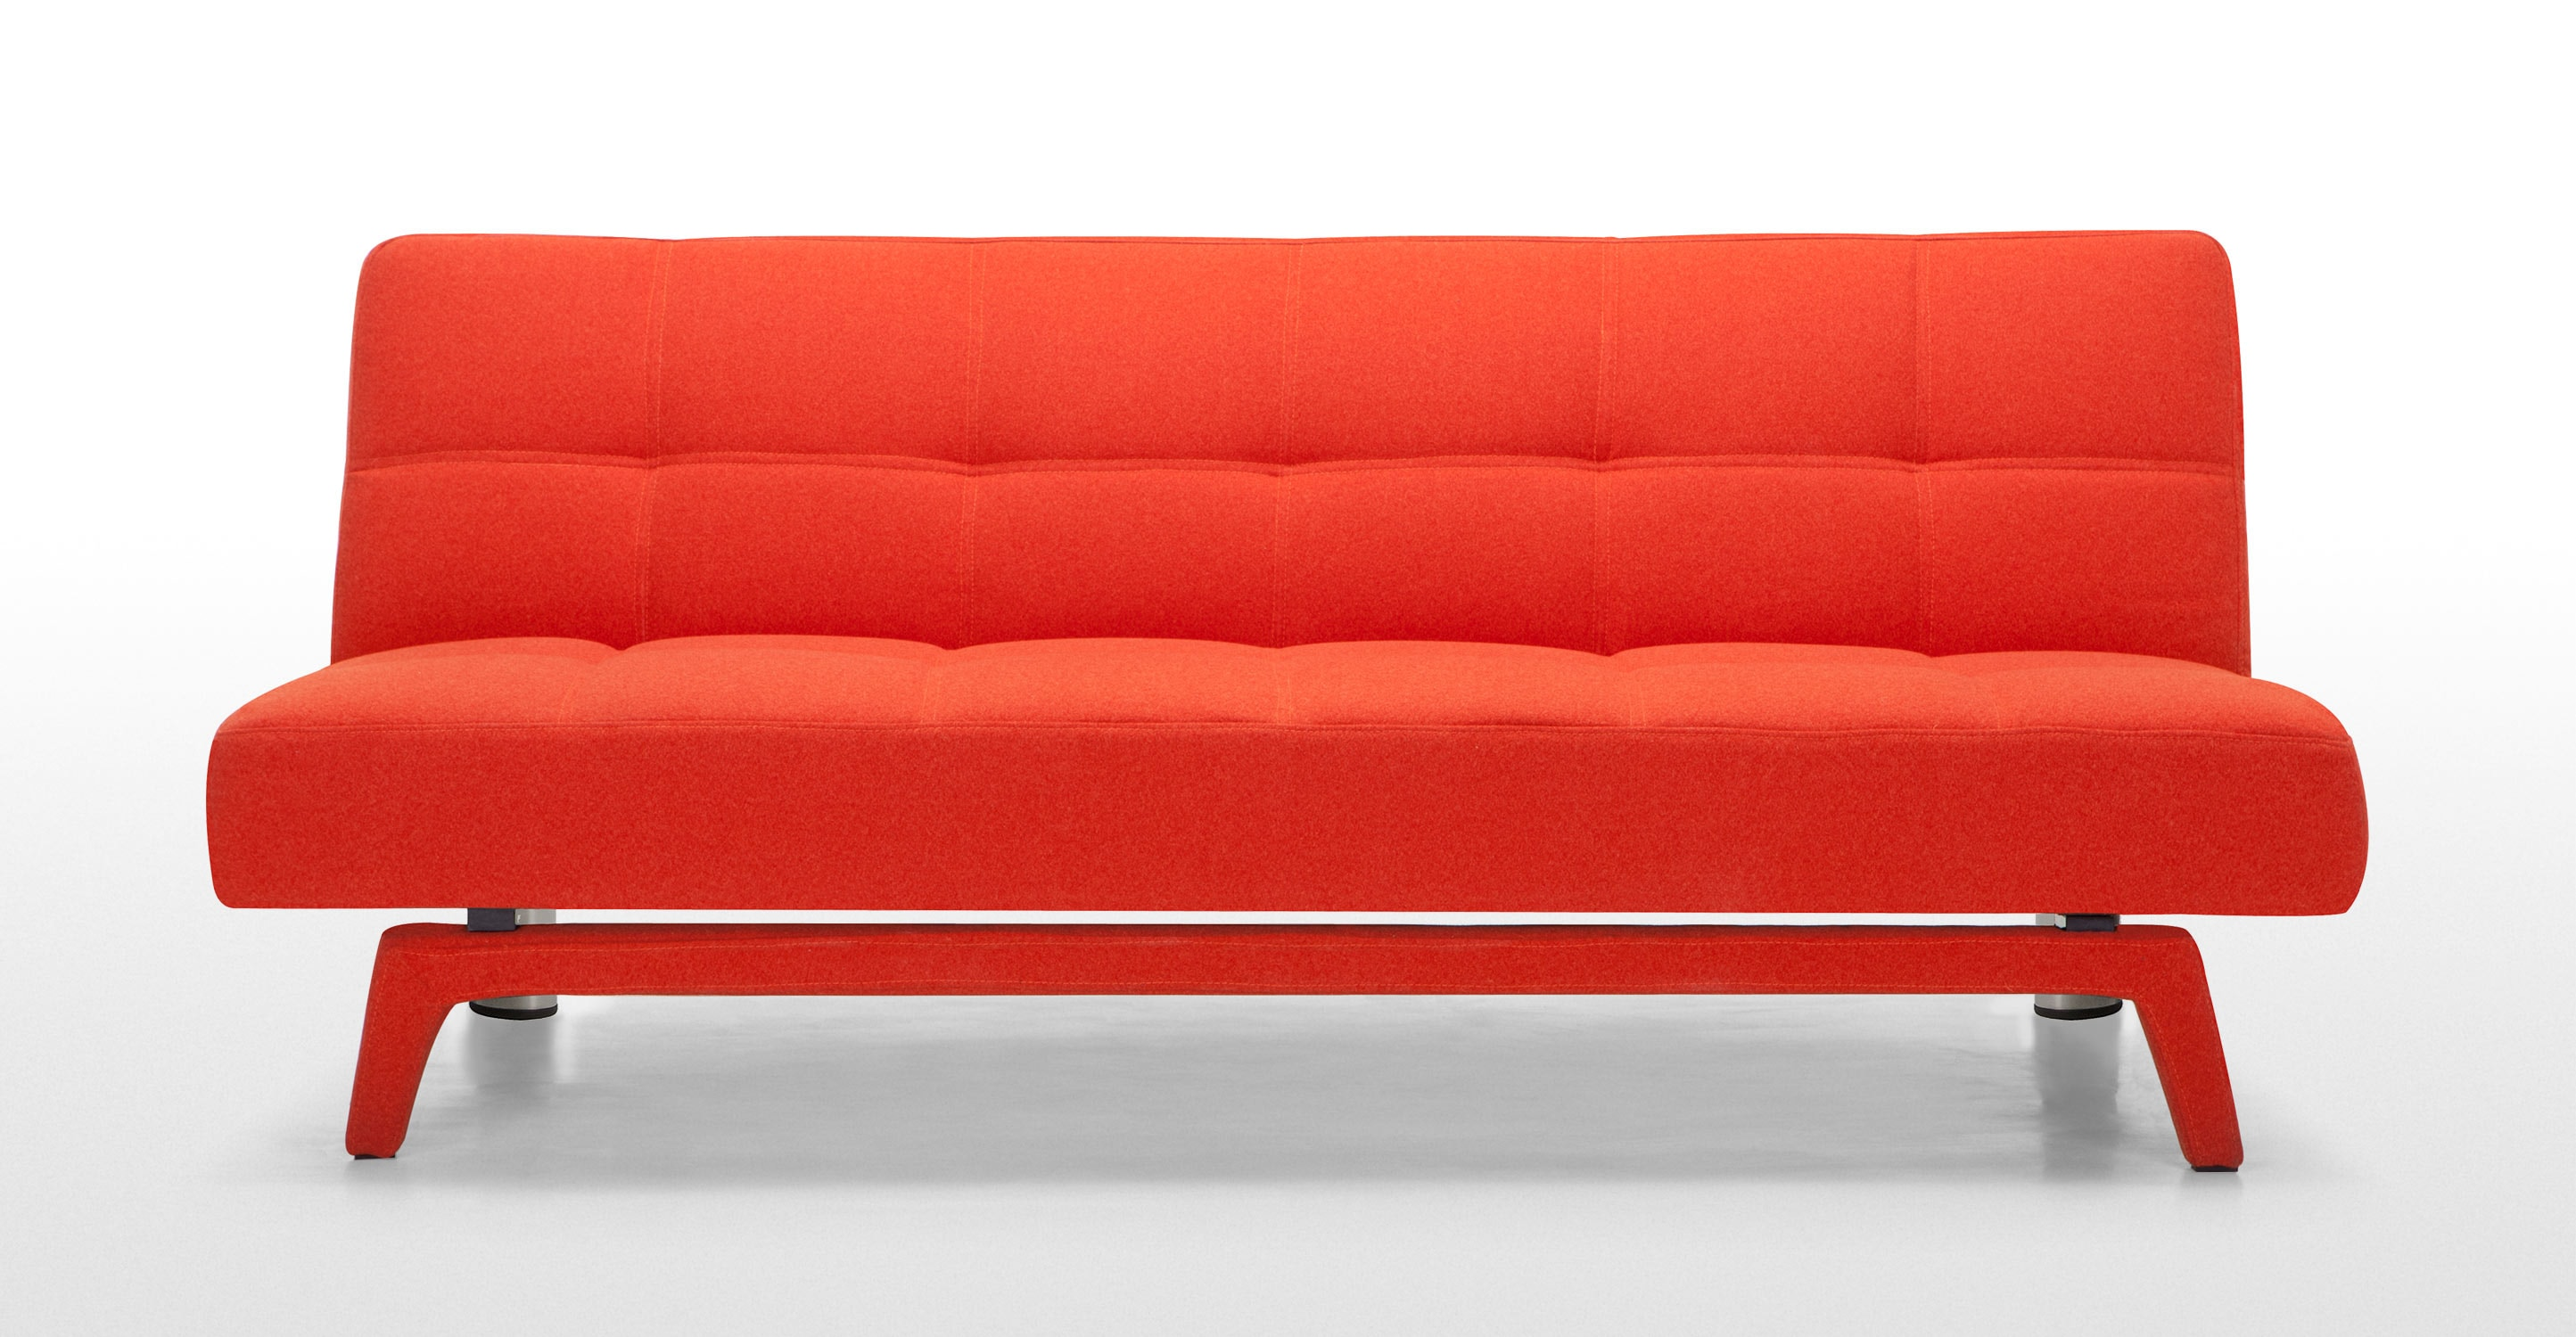 Bobs Furniture Futon | Balkarp Sofa Bed | Sleeper Chairs Ikea